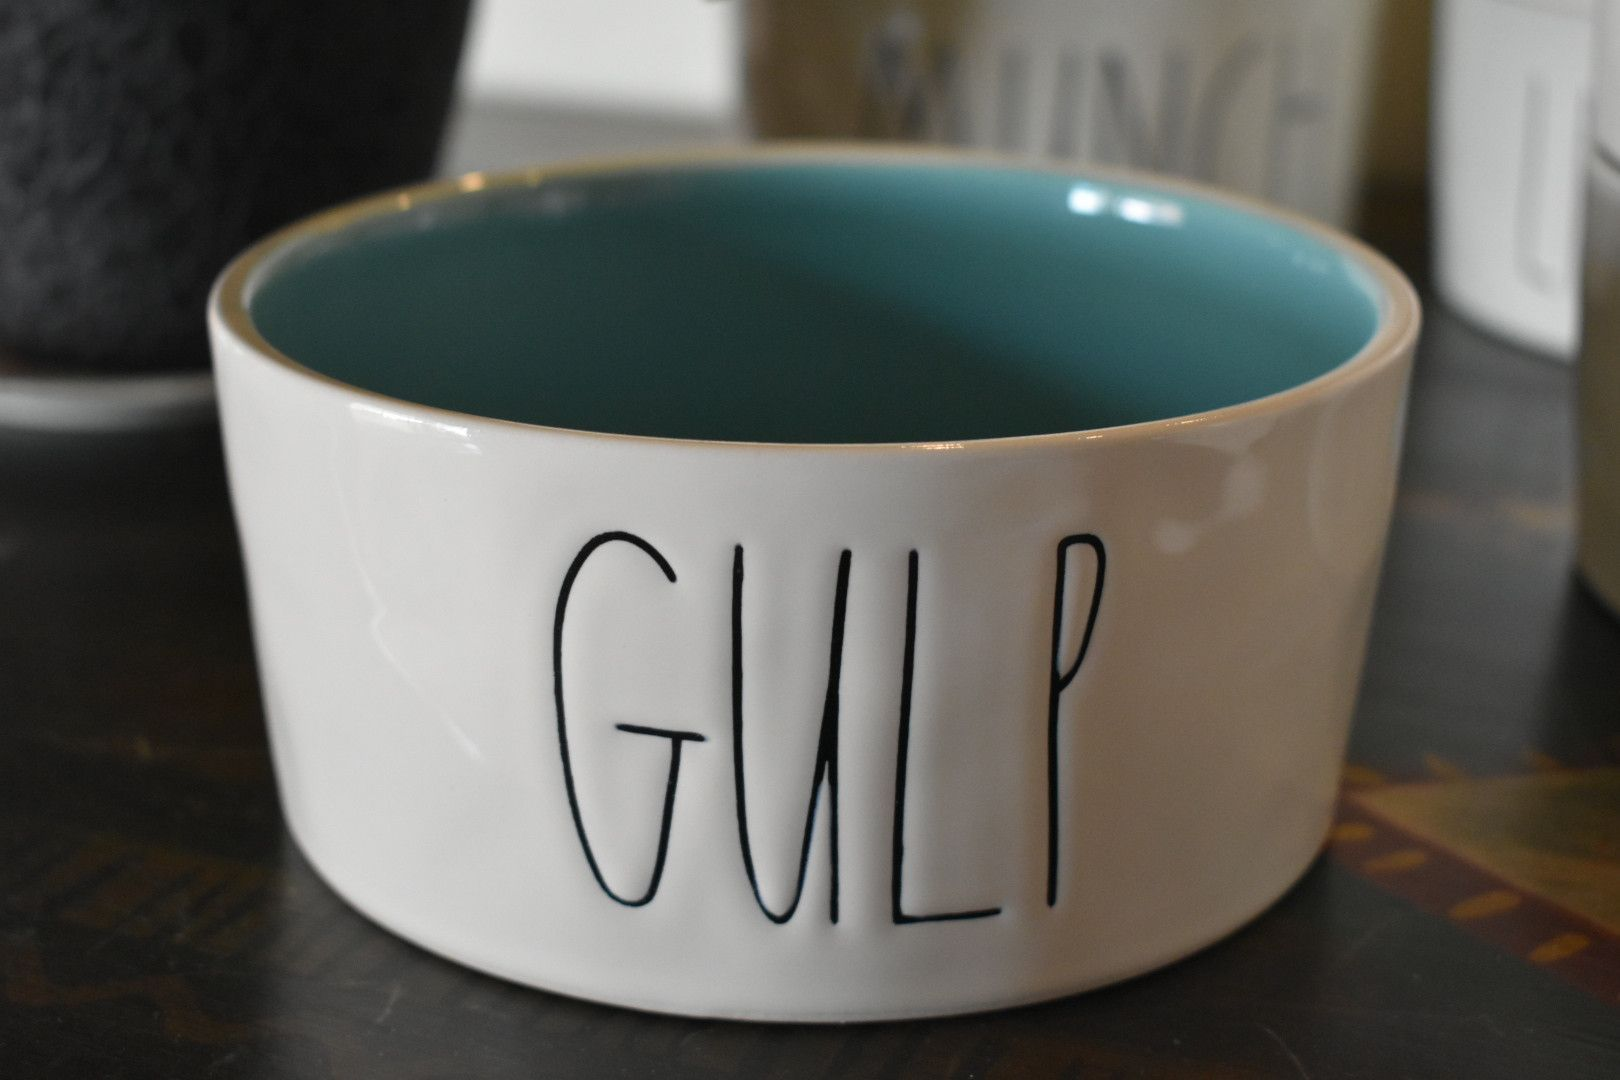 Gulp Pet Bowl by Rae Dunn